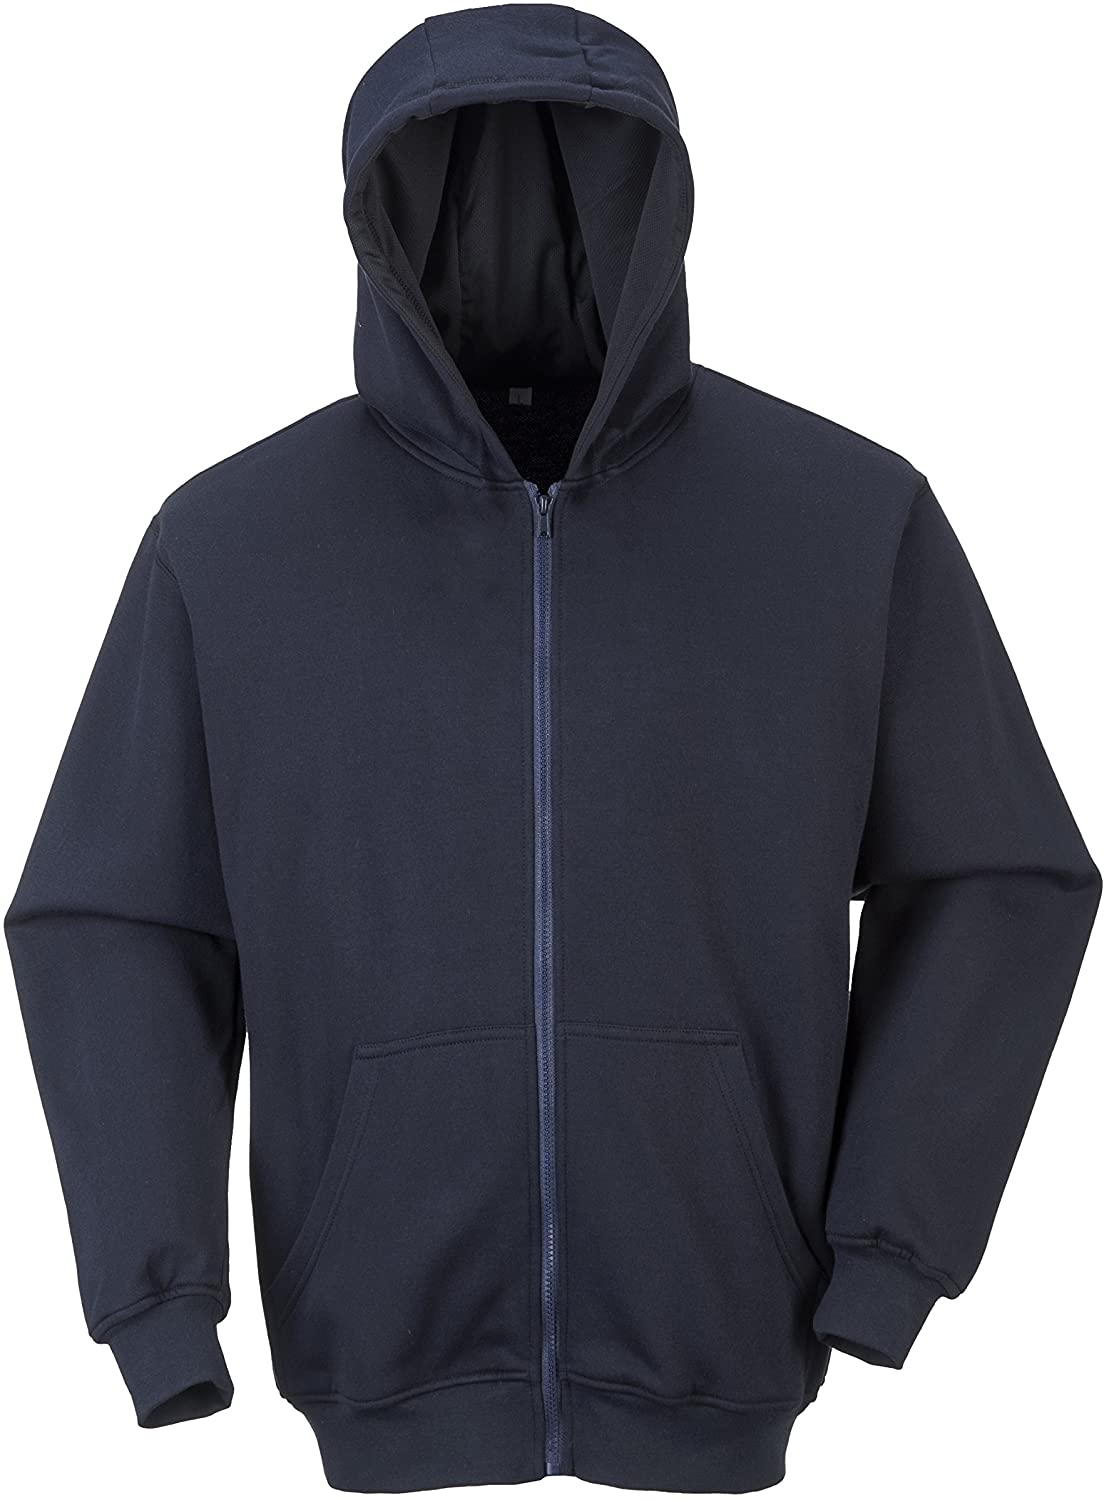 Flame Resistant Zipper Front Hooded Sweatshirt - Hoodie Clothing - Safety Jacket for Men (6XL, Navy, 1 Piece)